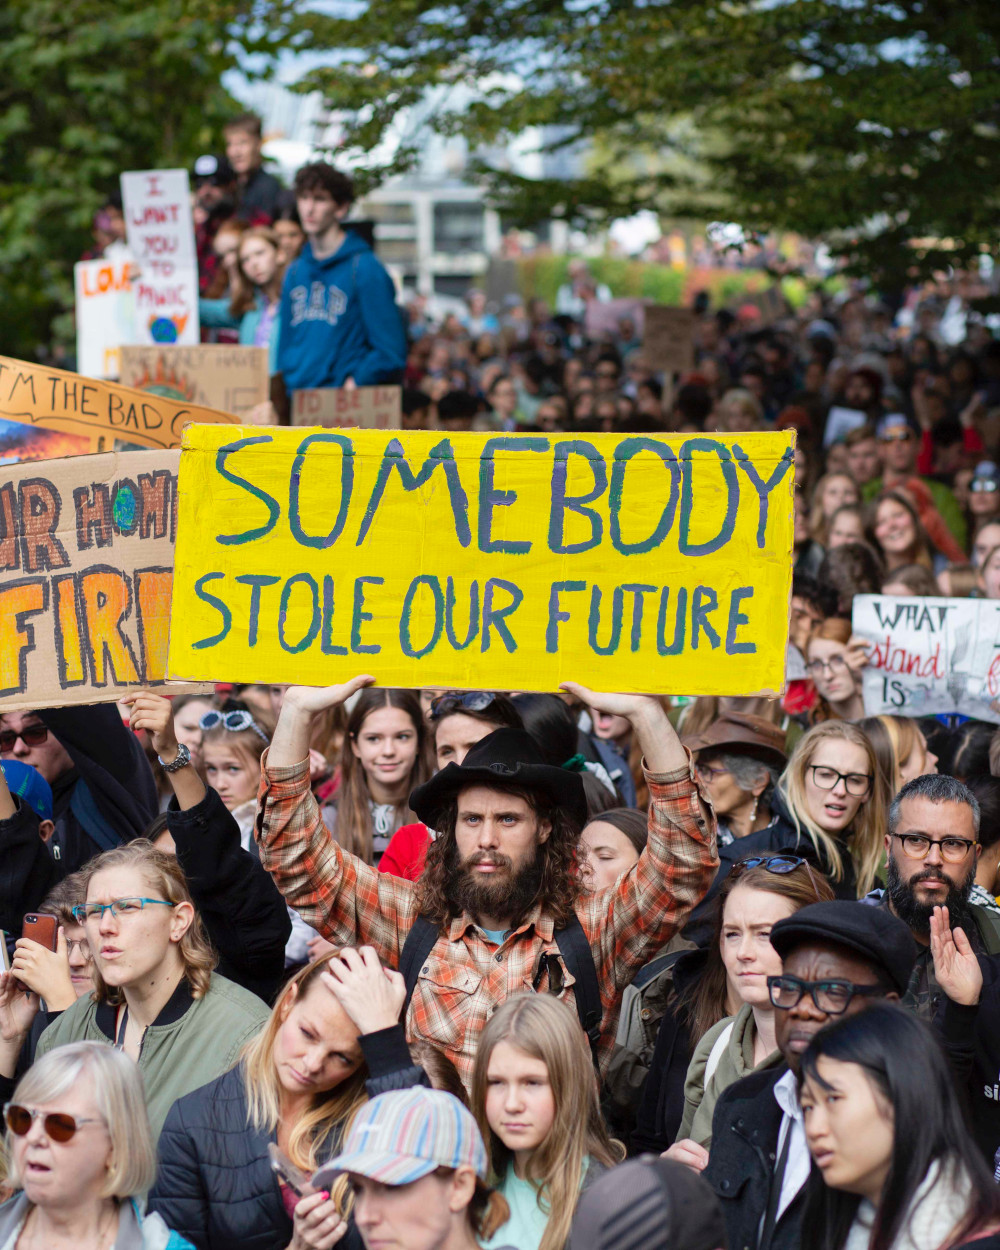 960px version of ClimateStrikeVancouverSomebodyStoleOurFuture.jpg